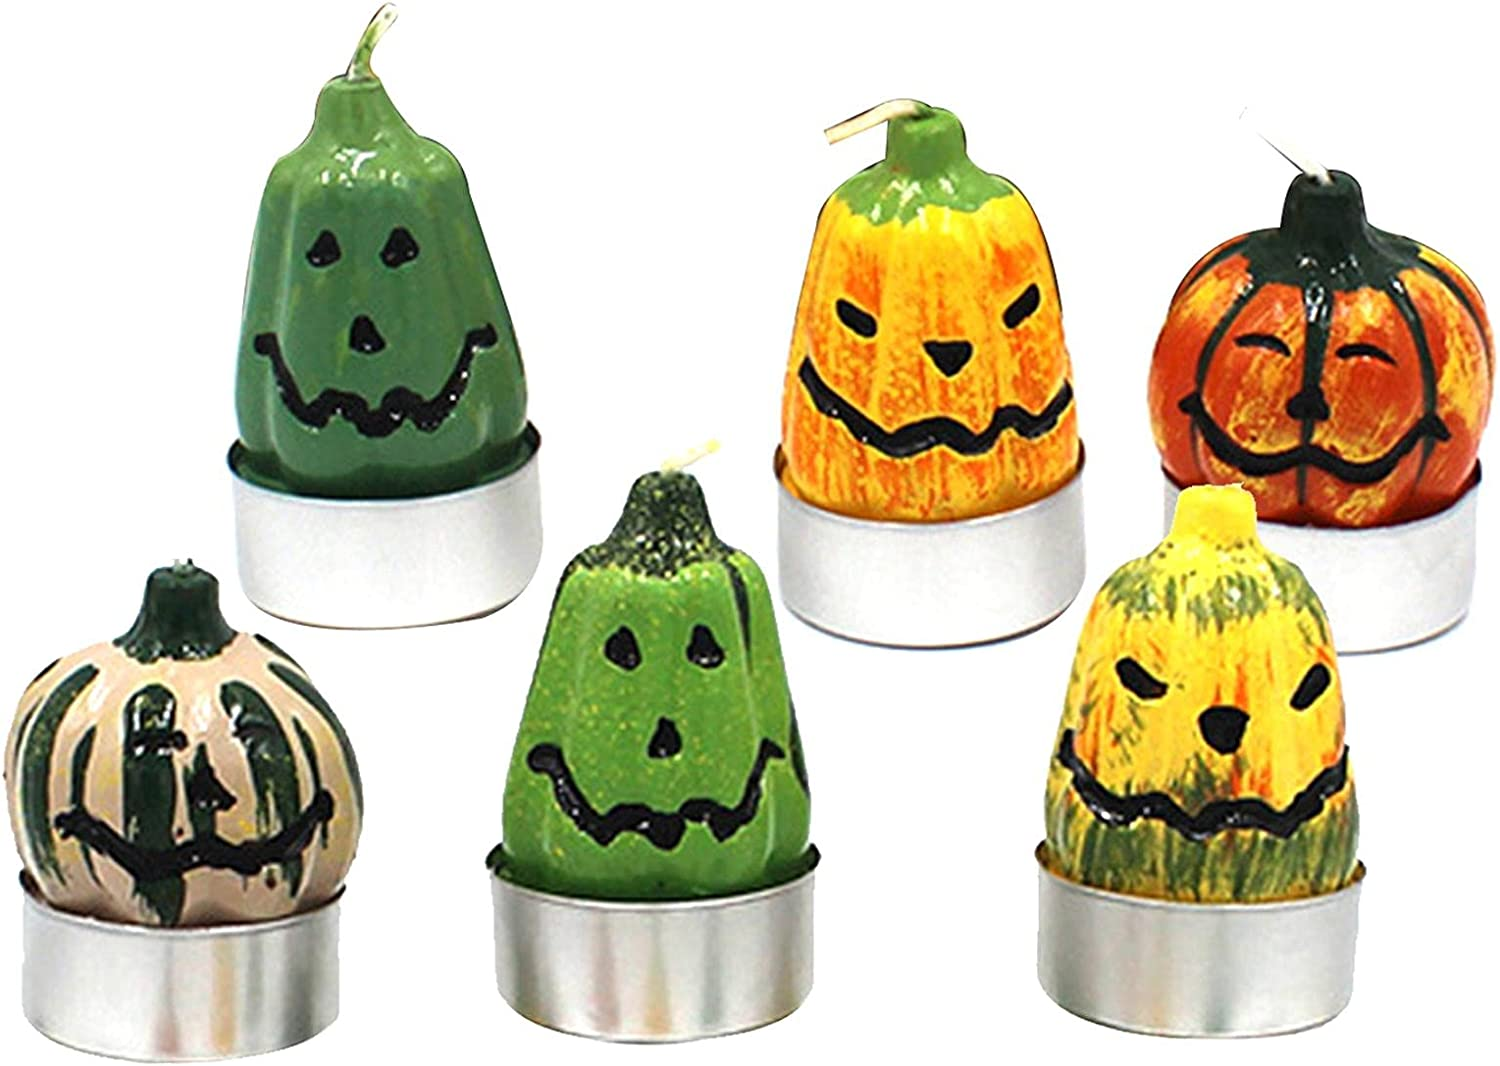 luning Halloween Pumpkin Flickering HallowMini Wholesale Sale Special Price Size Candles Cut